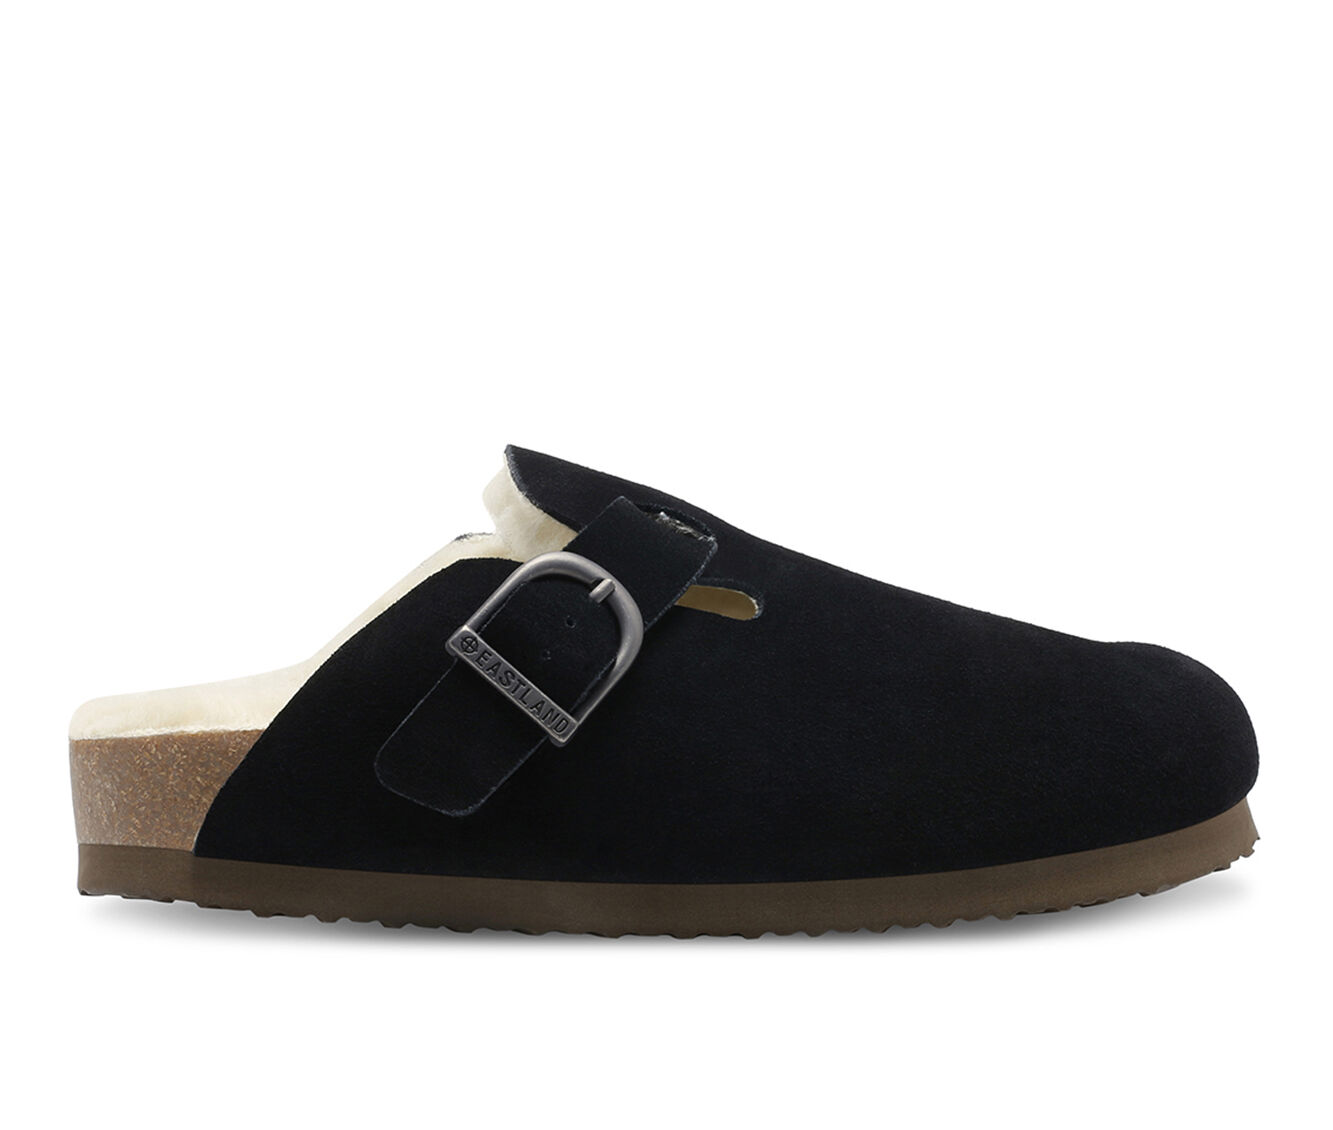 Women's Eastland Gina Lined Clogs Black